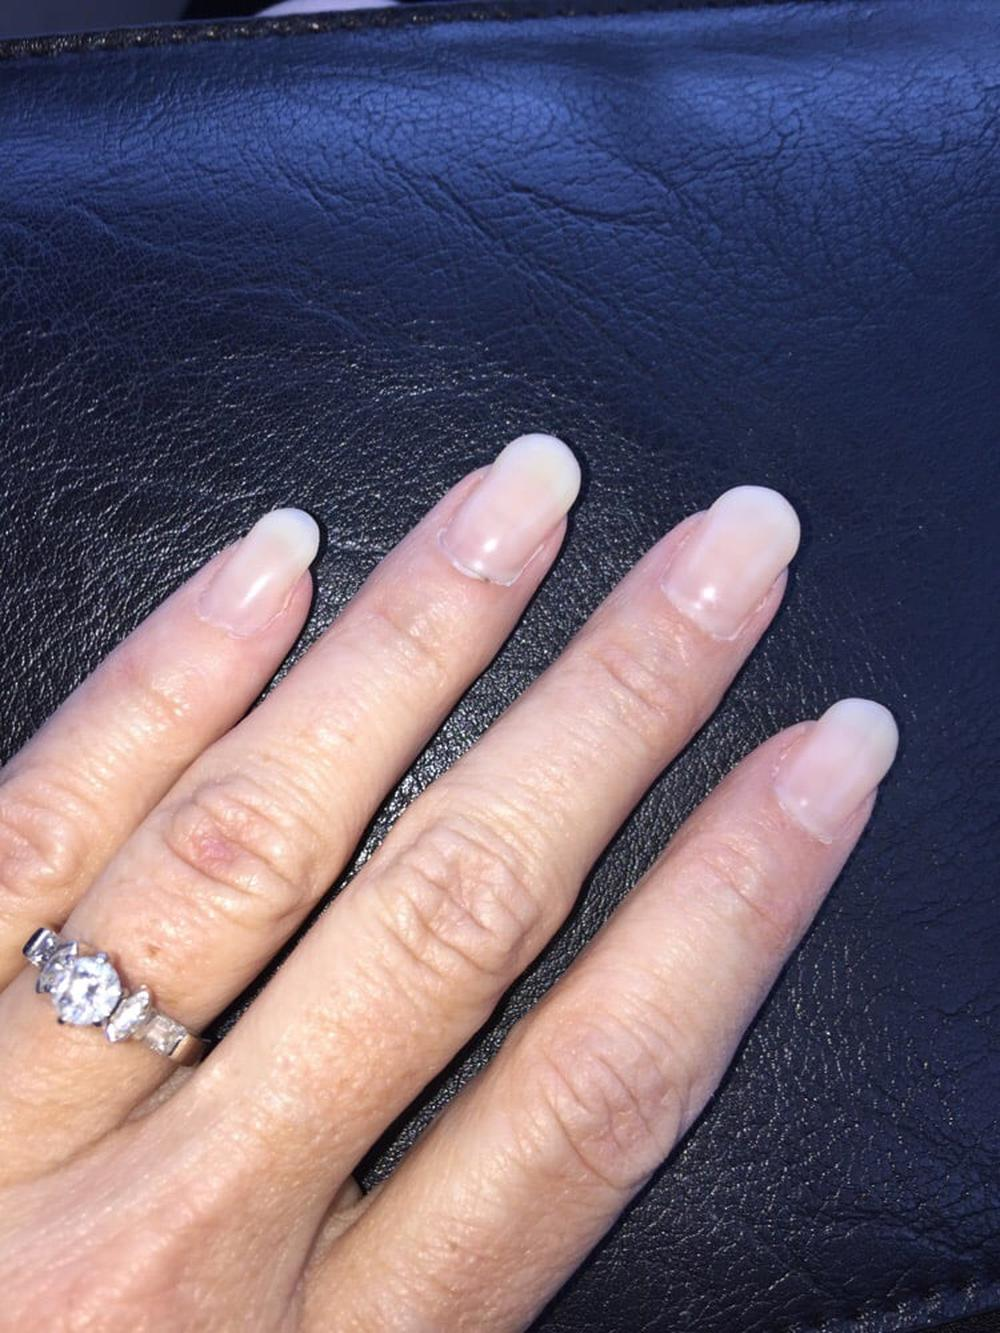 Le Chic Nails and Spa